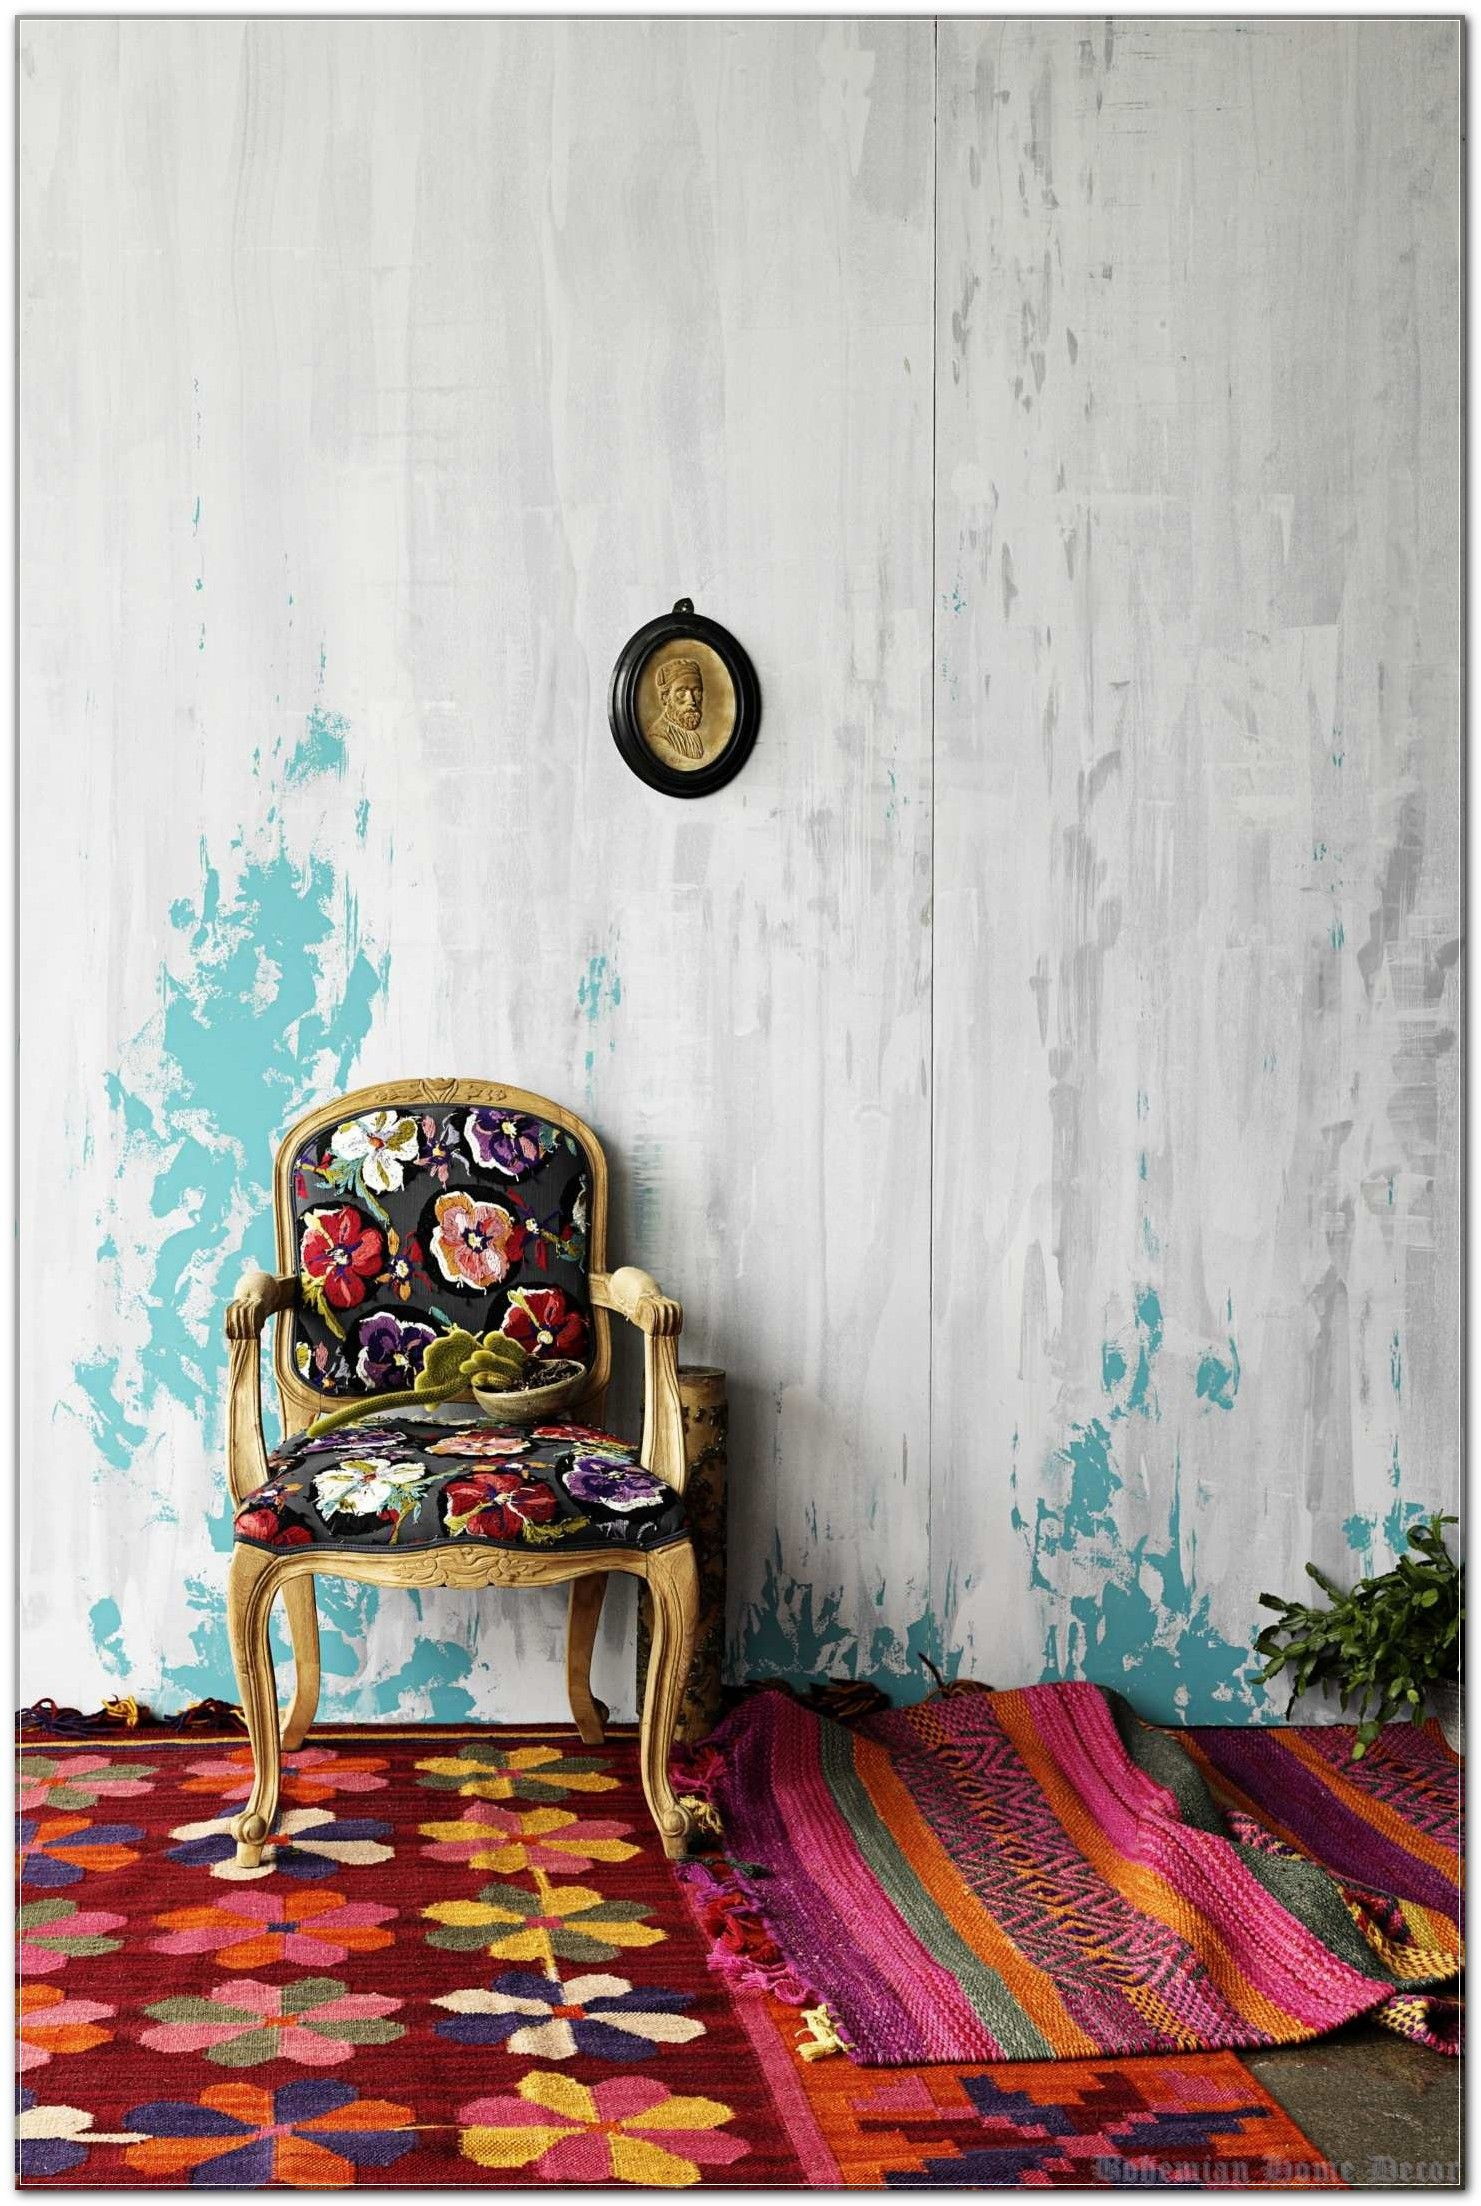 One Tip To Dramatically Improve You(r) Bohemian Home Decor